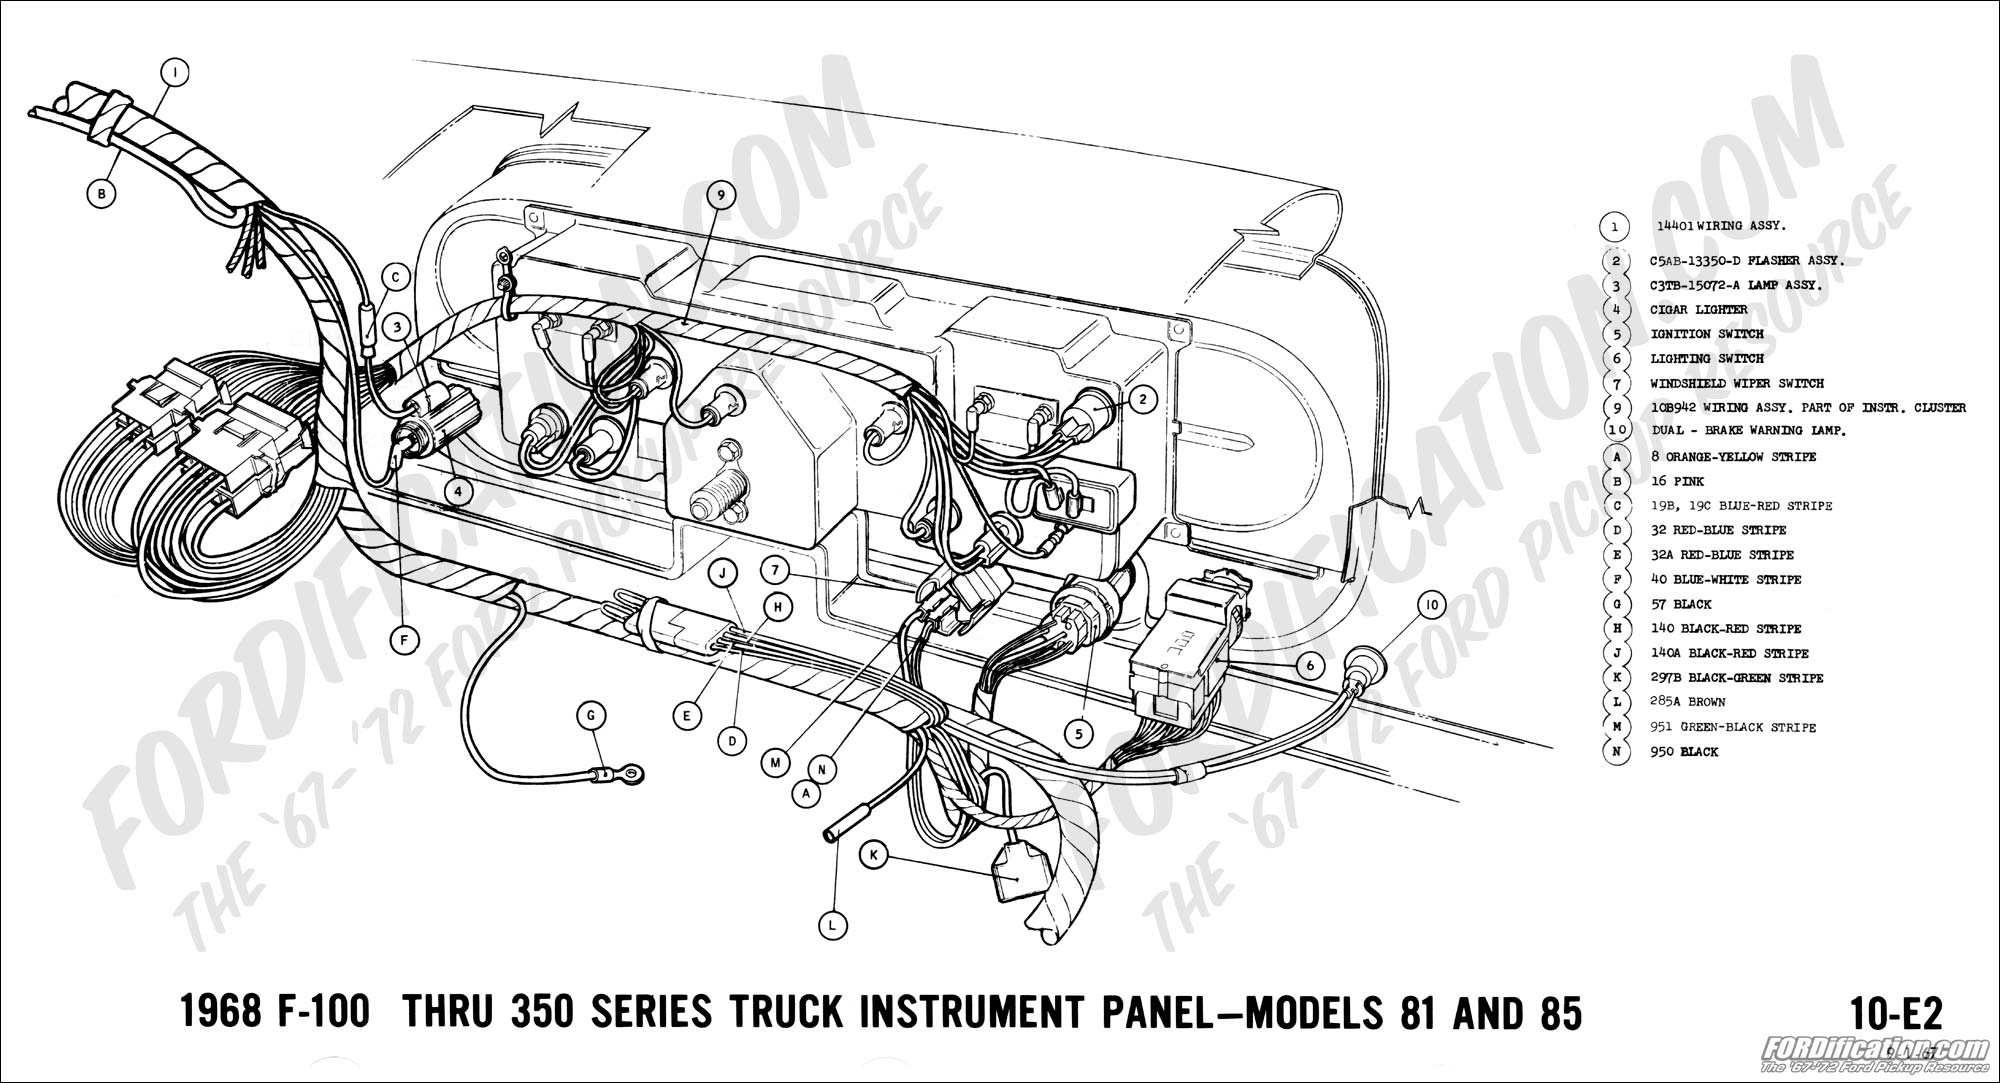 hight resolution of  wiring diagram free download schematic 12 ford truck technical drawings and schematics section h wiringmanual diagrams legend 1968 f 100 thru